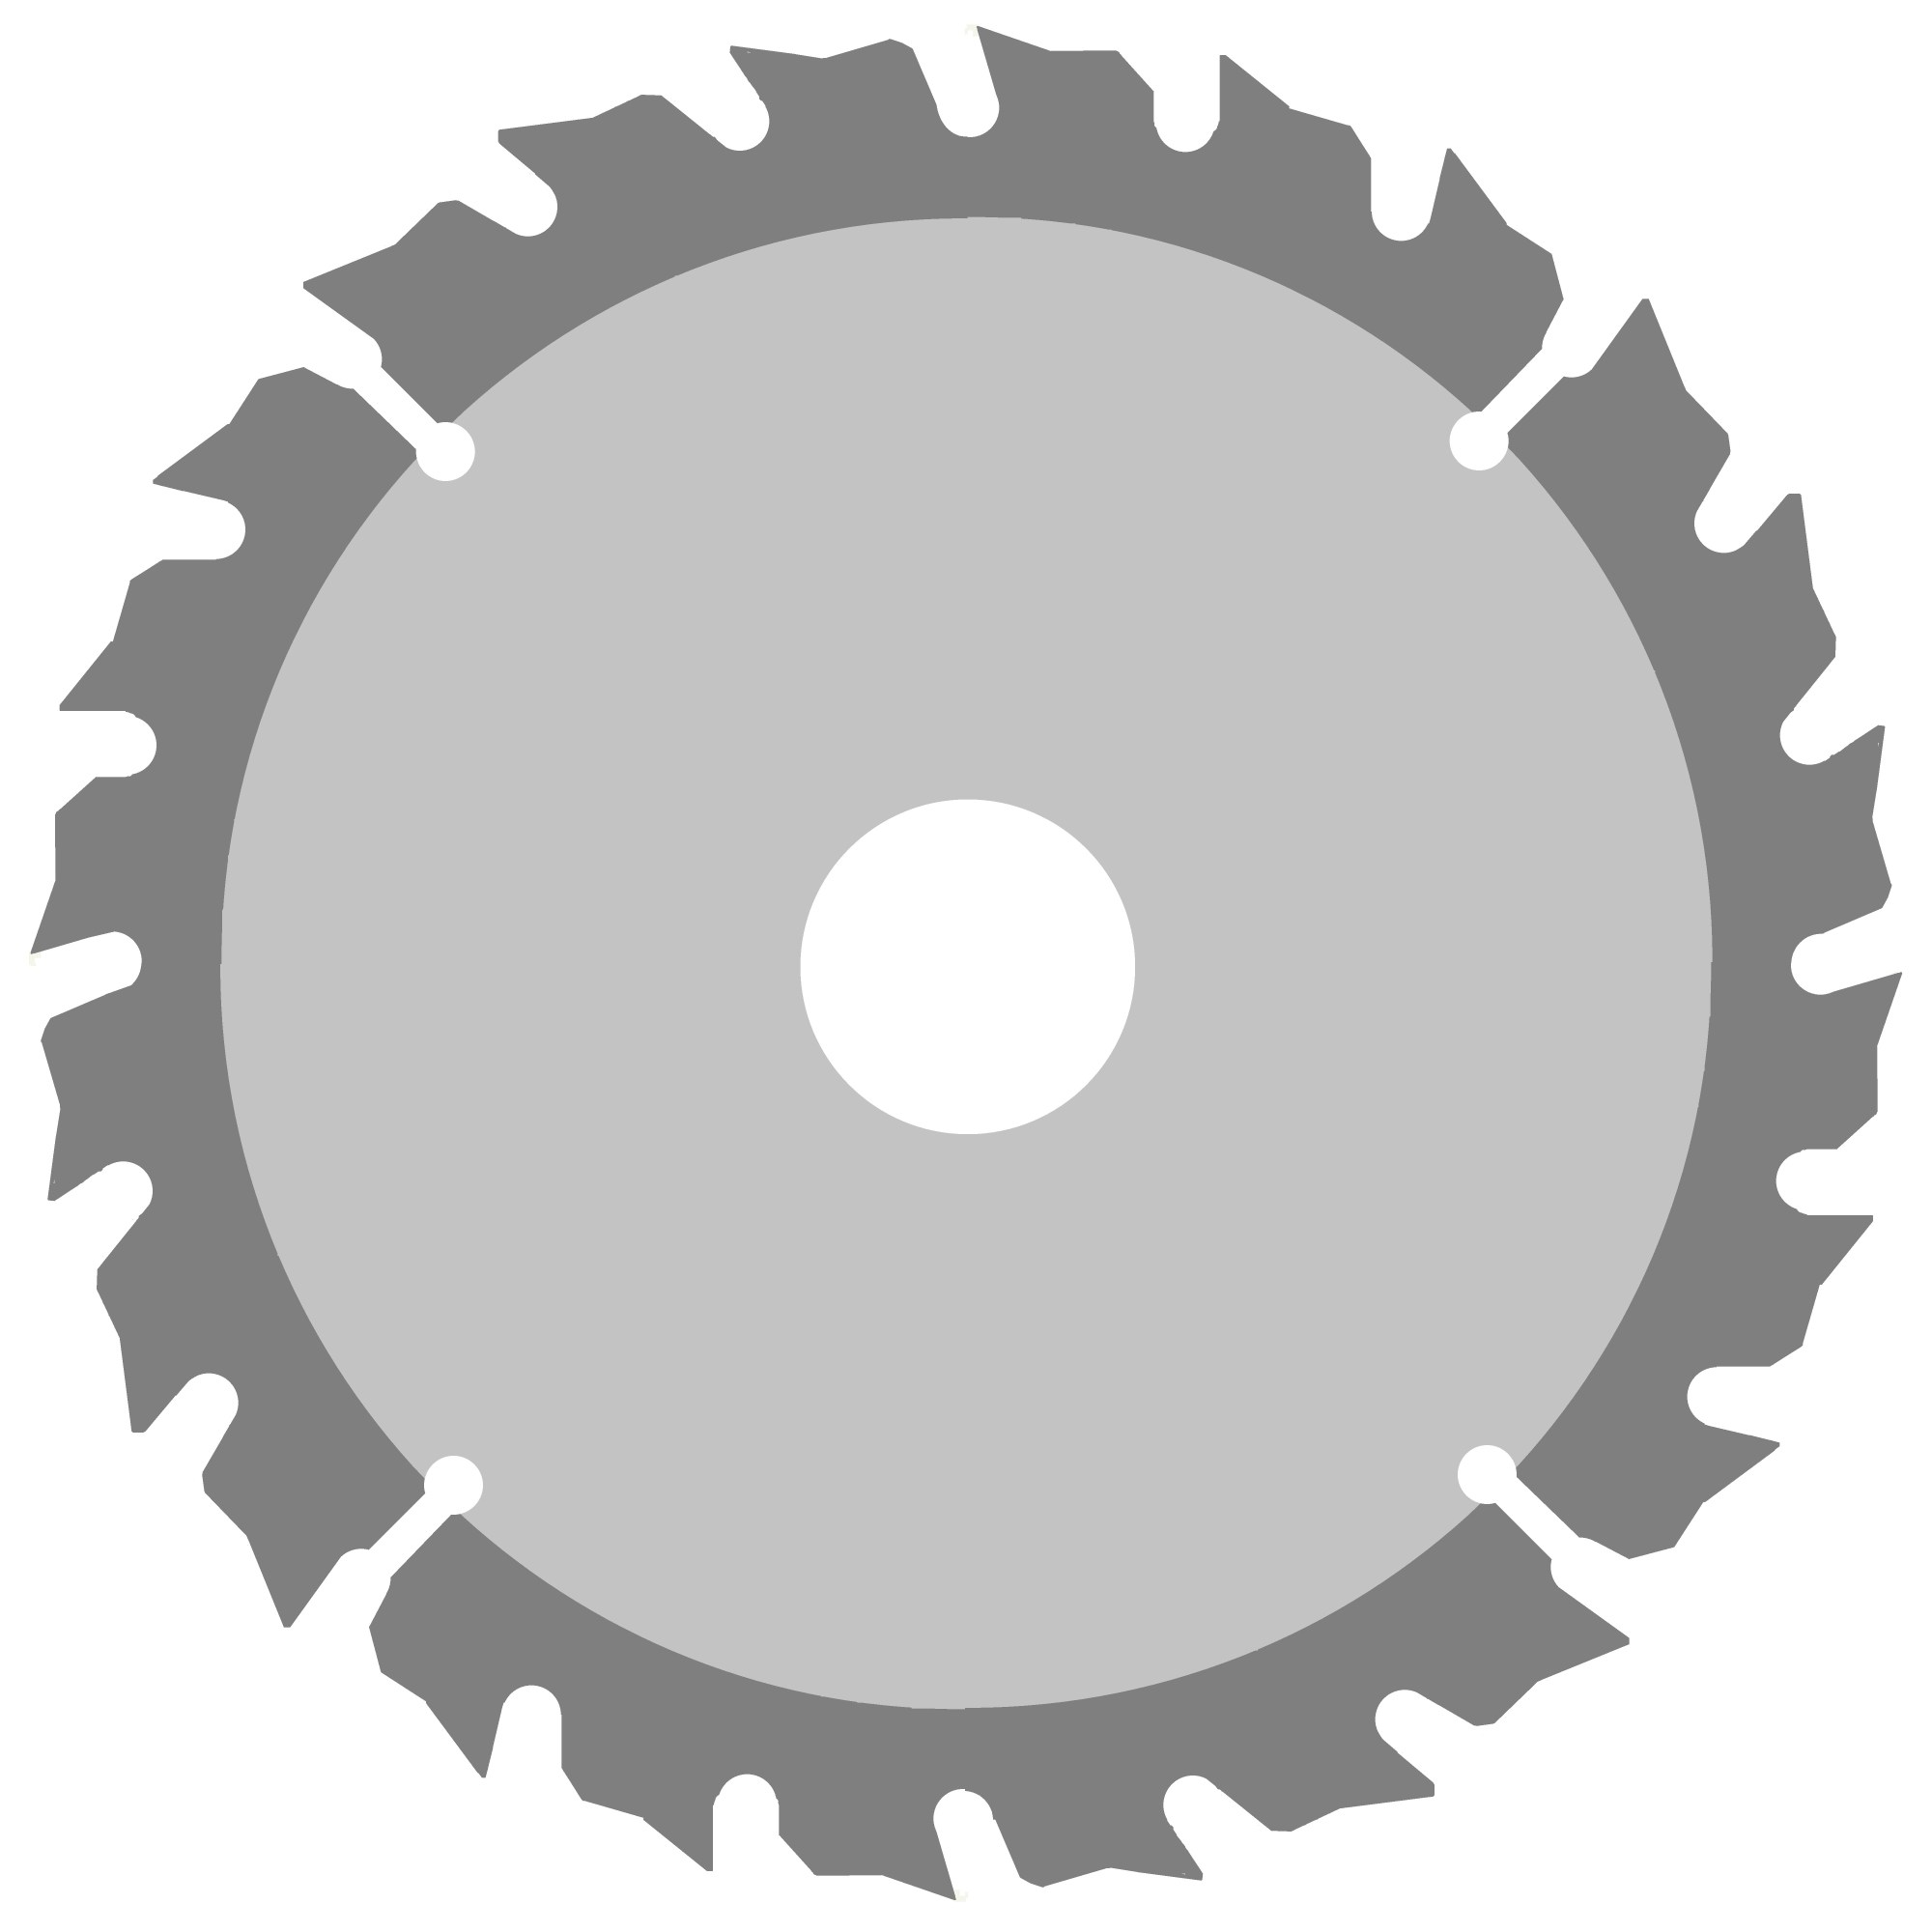 hight resolution of circular saw rk